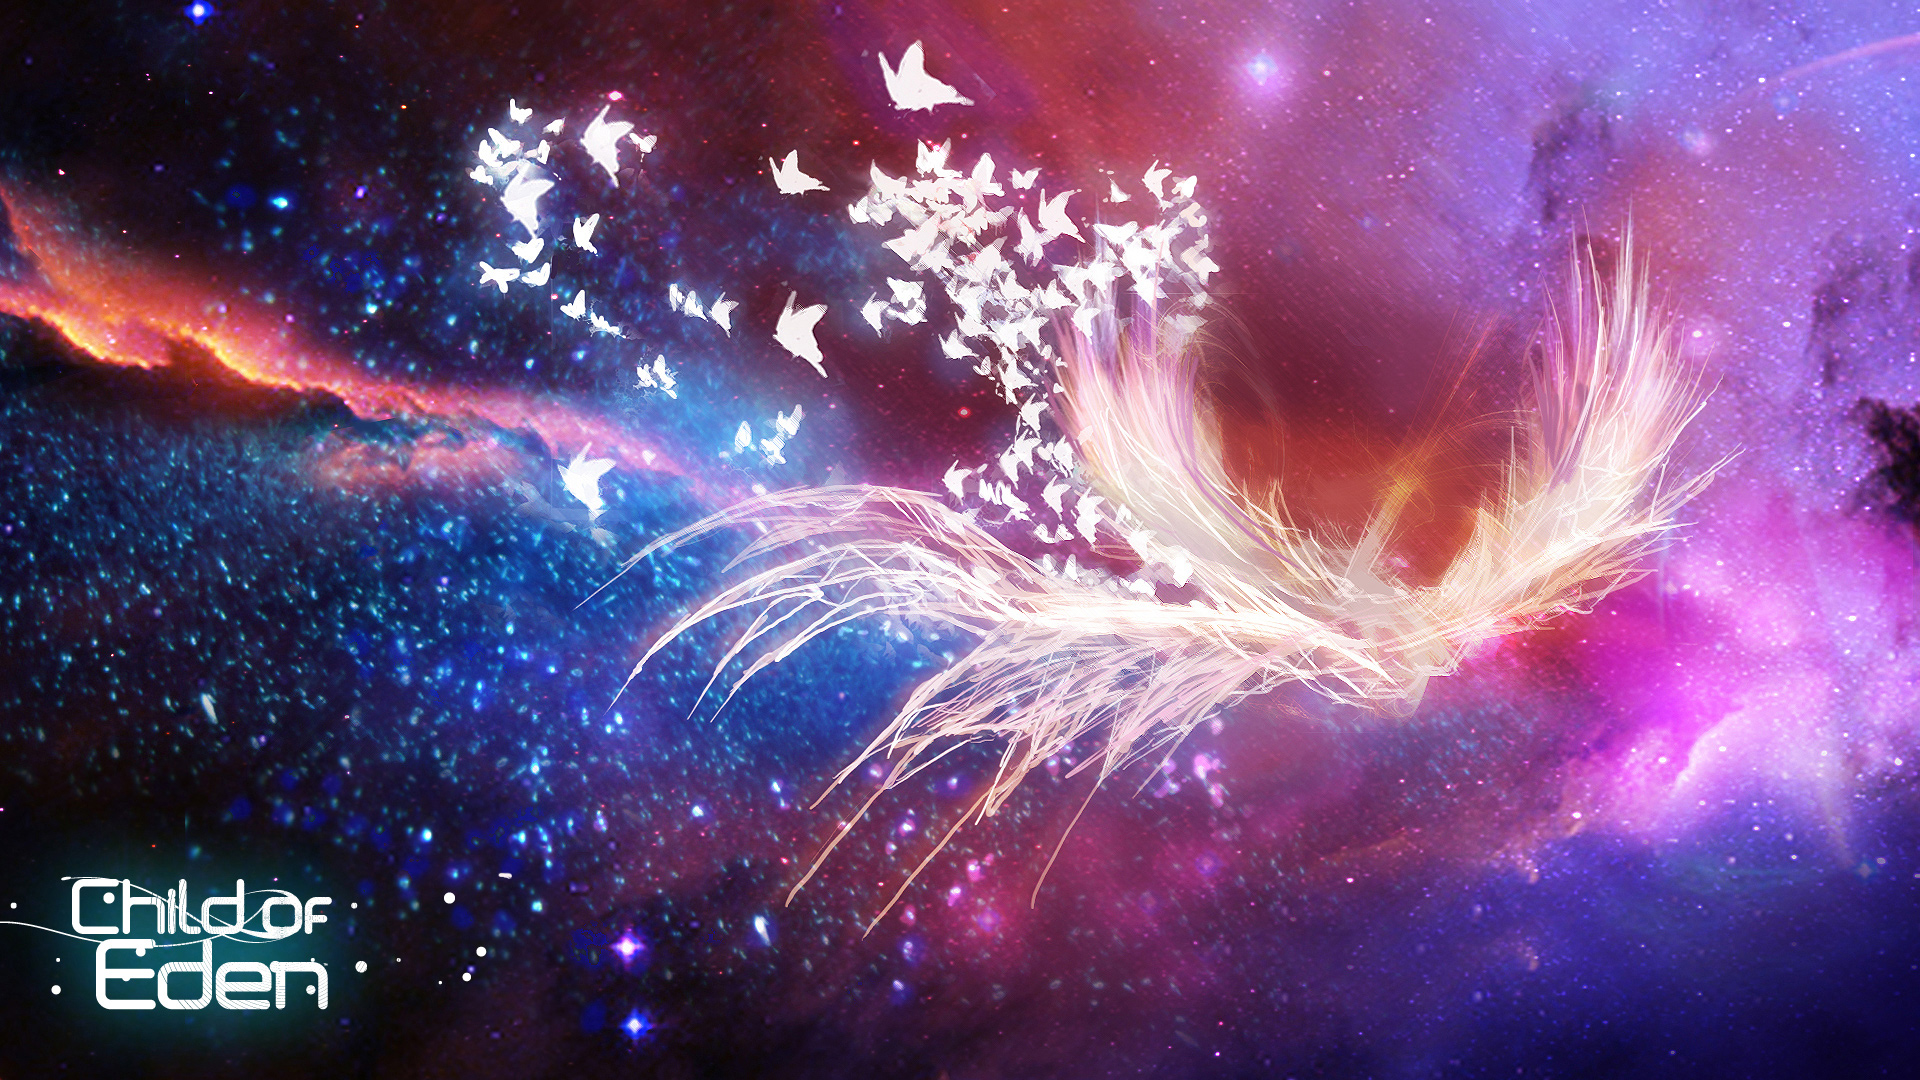 Child of Eden, abstract wallpapers